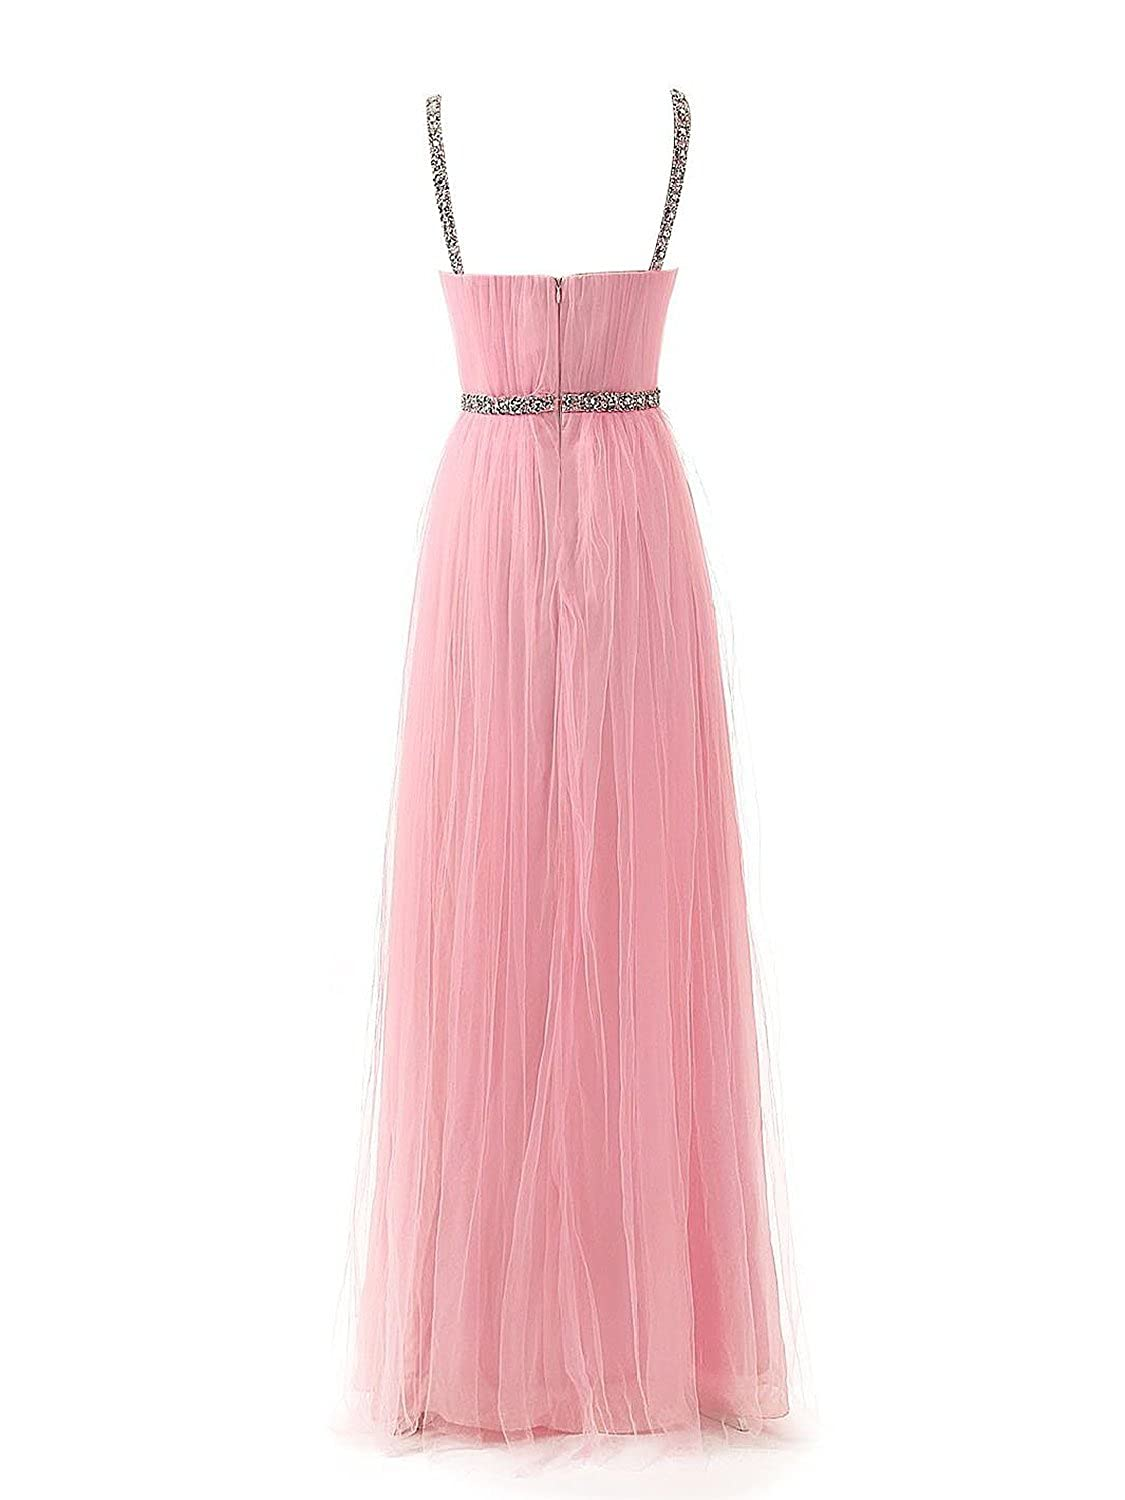 Carnivalprom Women's Floor Length Spaghetti Straps Tulle Bridesmaid Dress Evening Prom Gown with Crystals Embellished